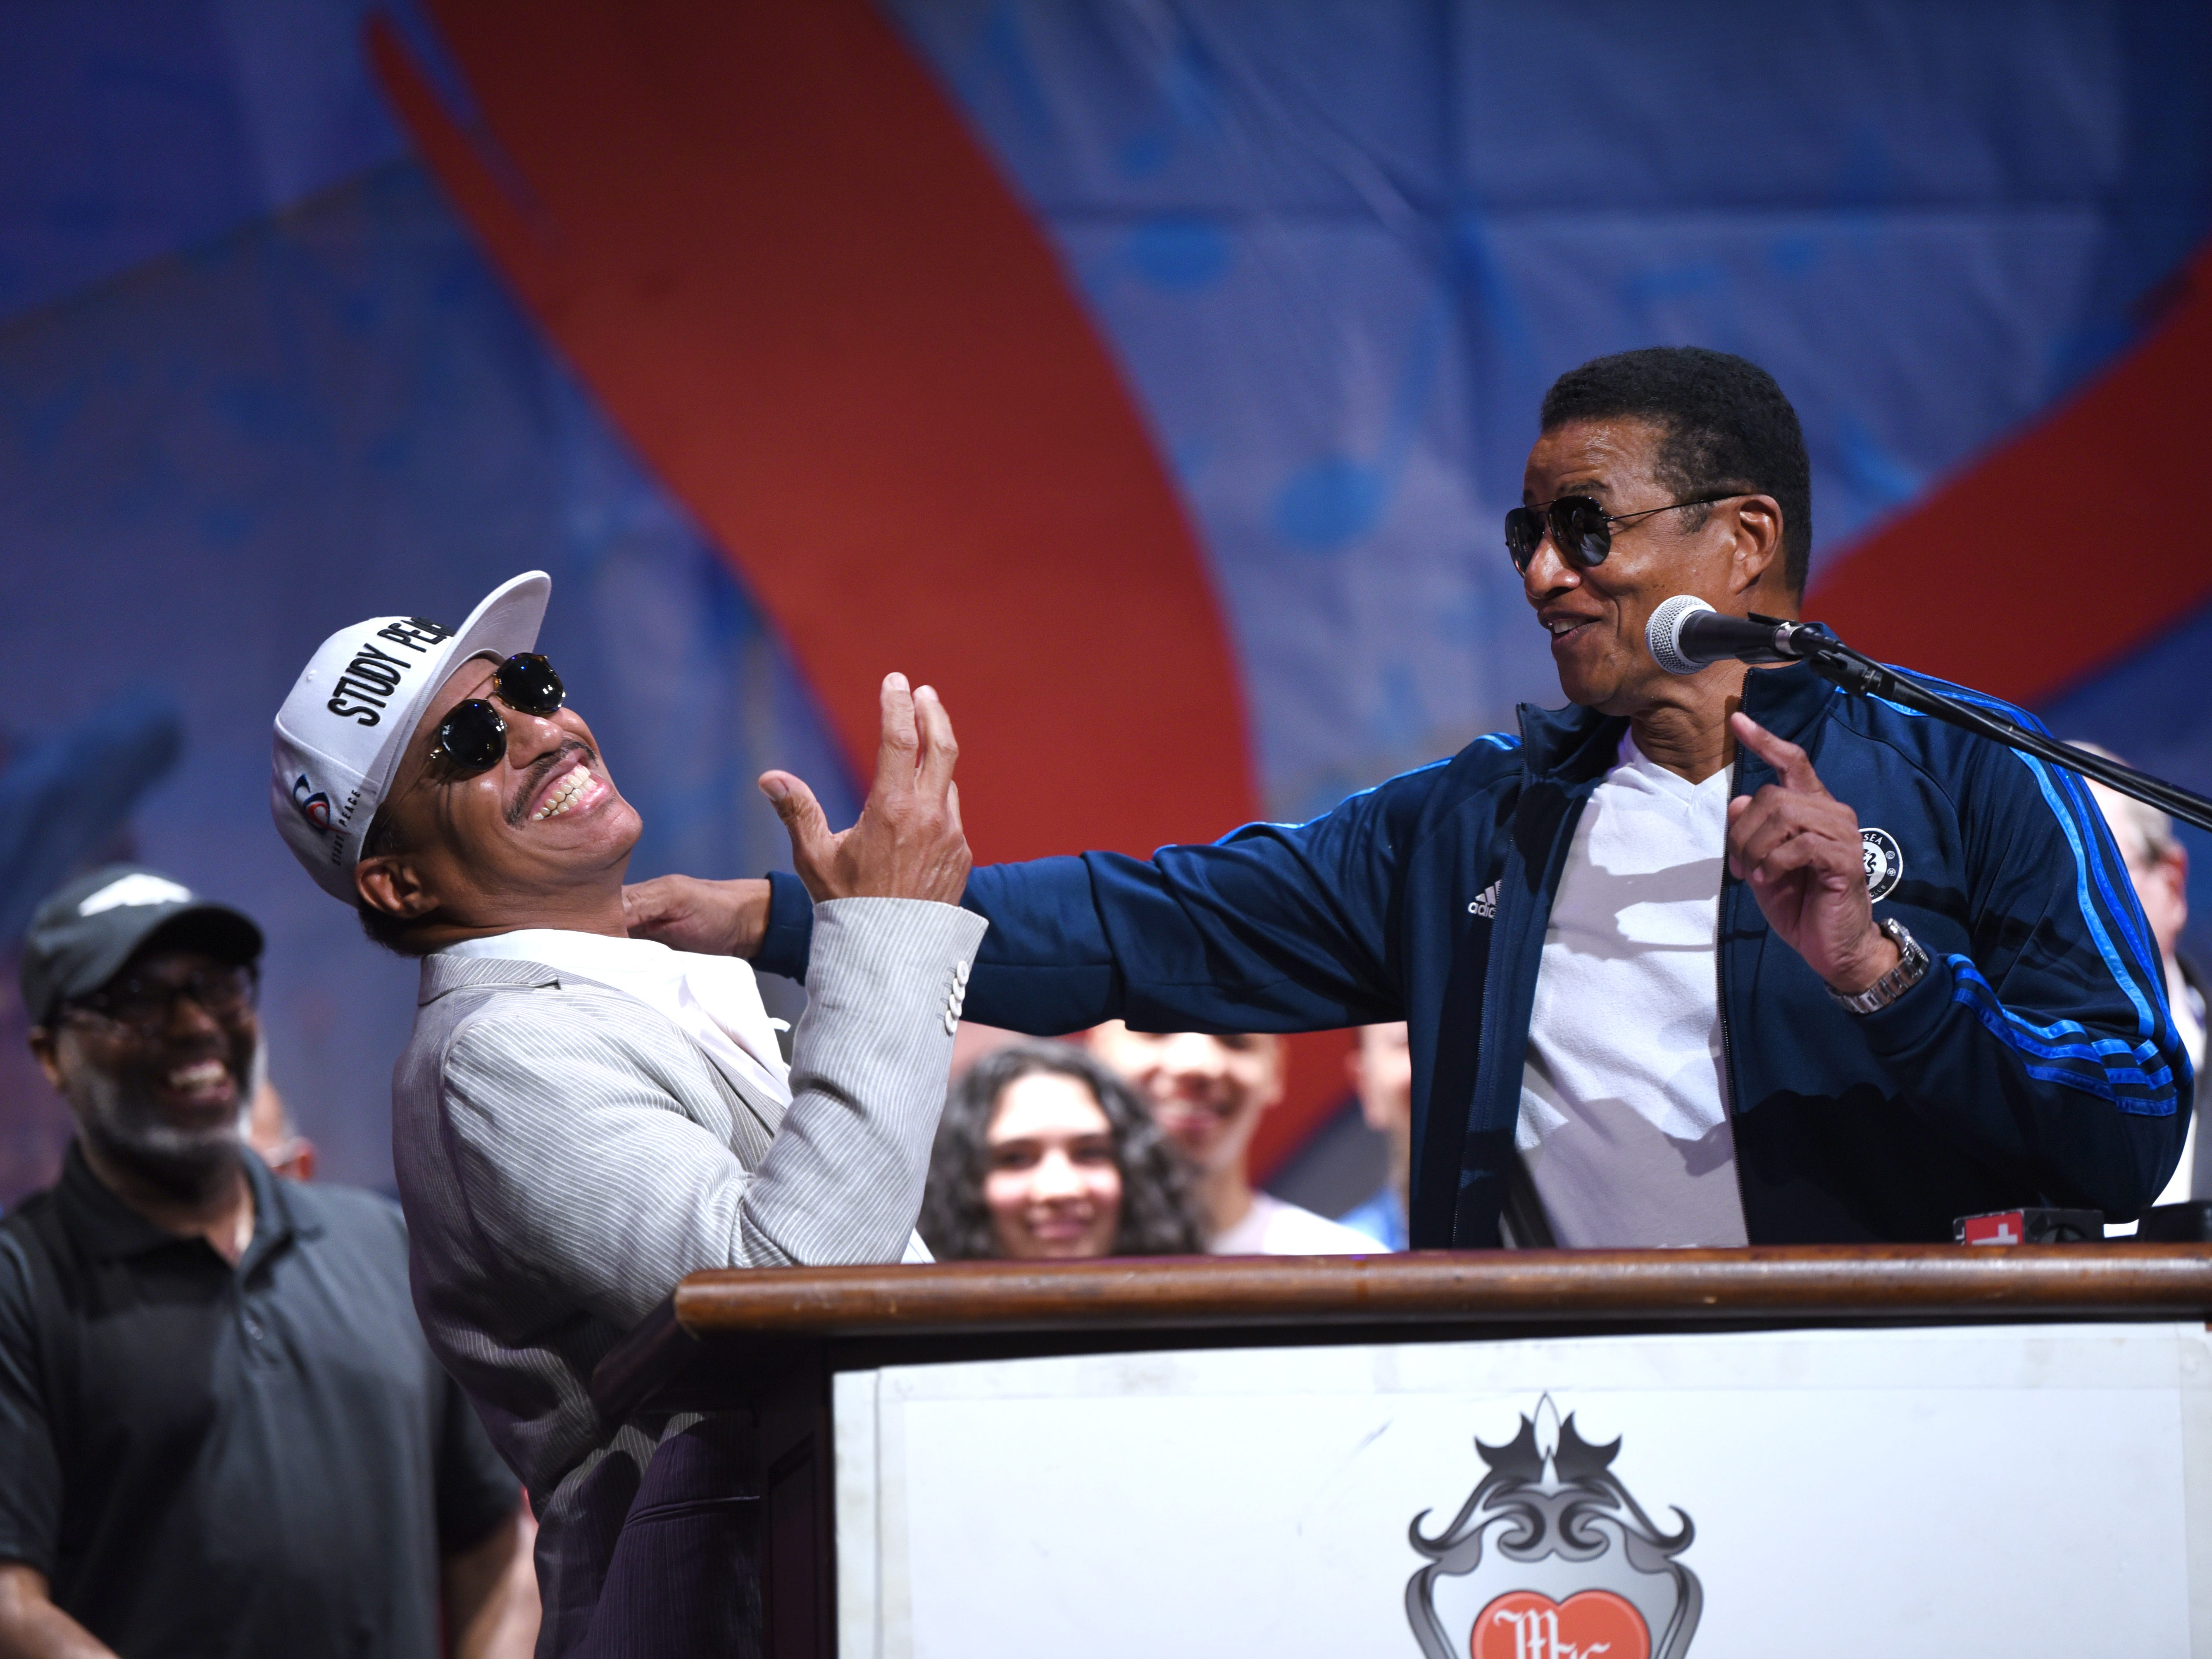 Marlon Jackson, left,  and his brother Jackie have fun as they announce their performance at the upcoming Detroit Music Weekend during a press conference at the Music Hall in Detroit on May 17, 2018.